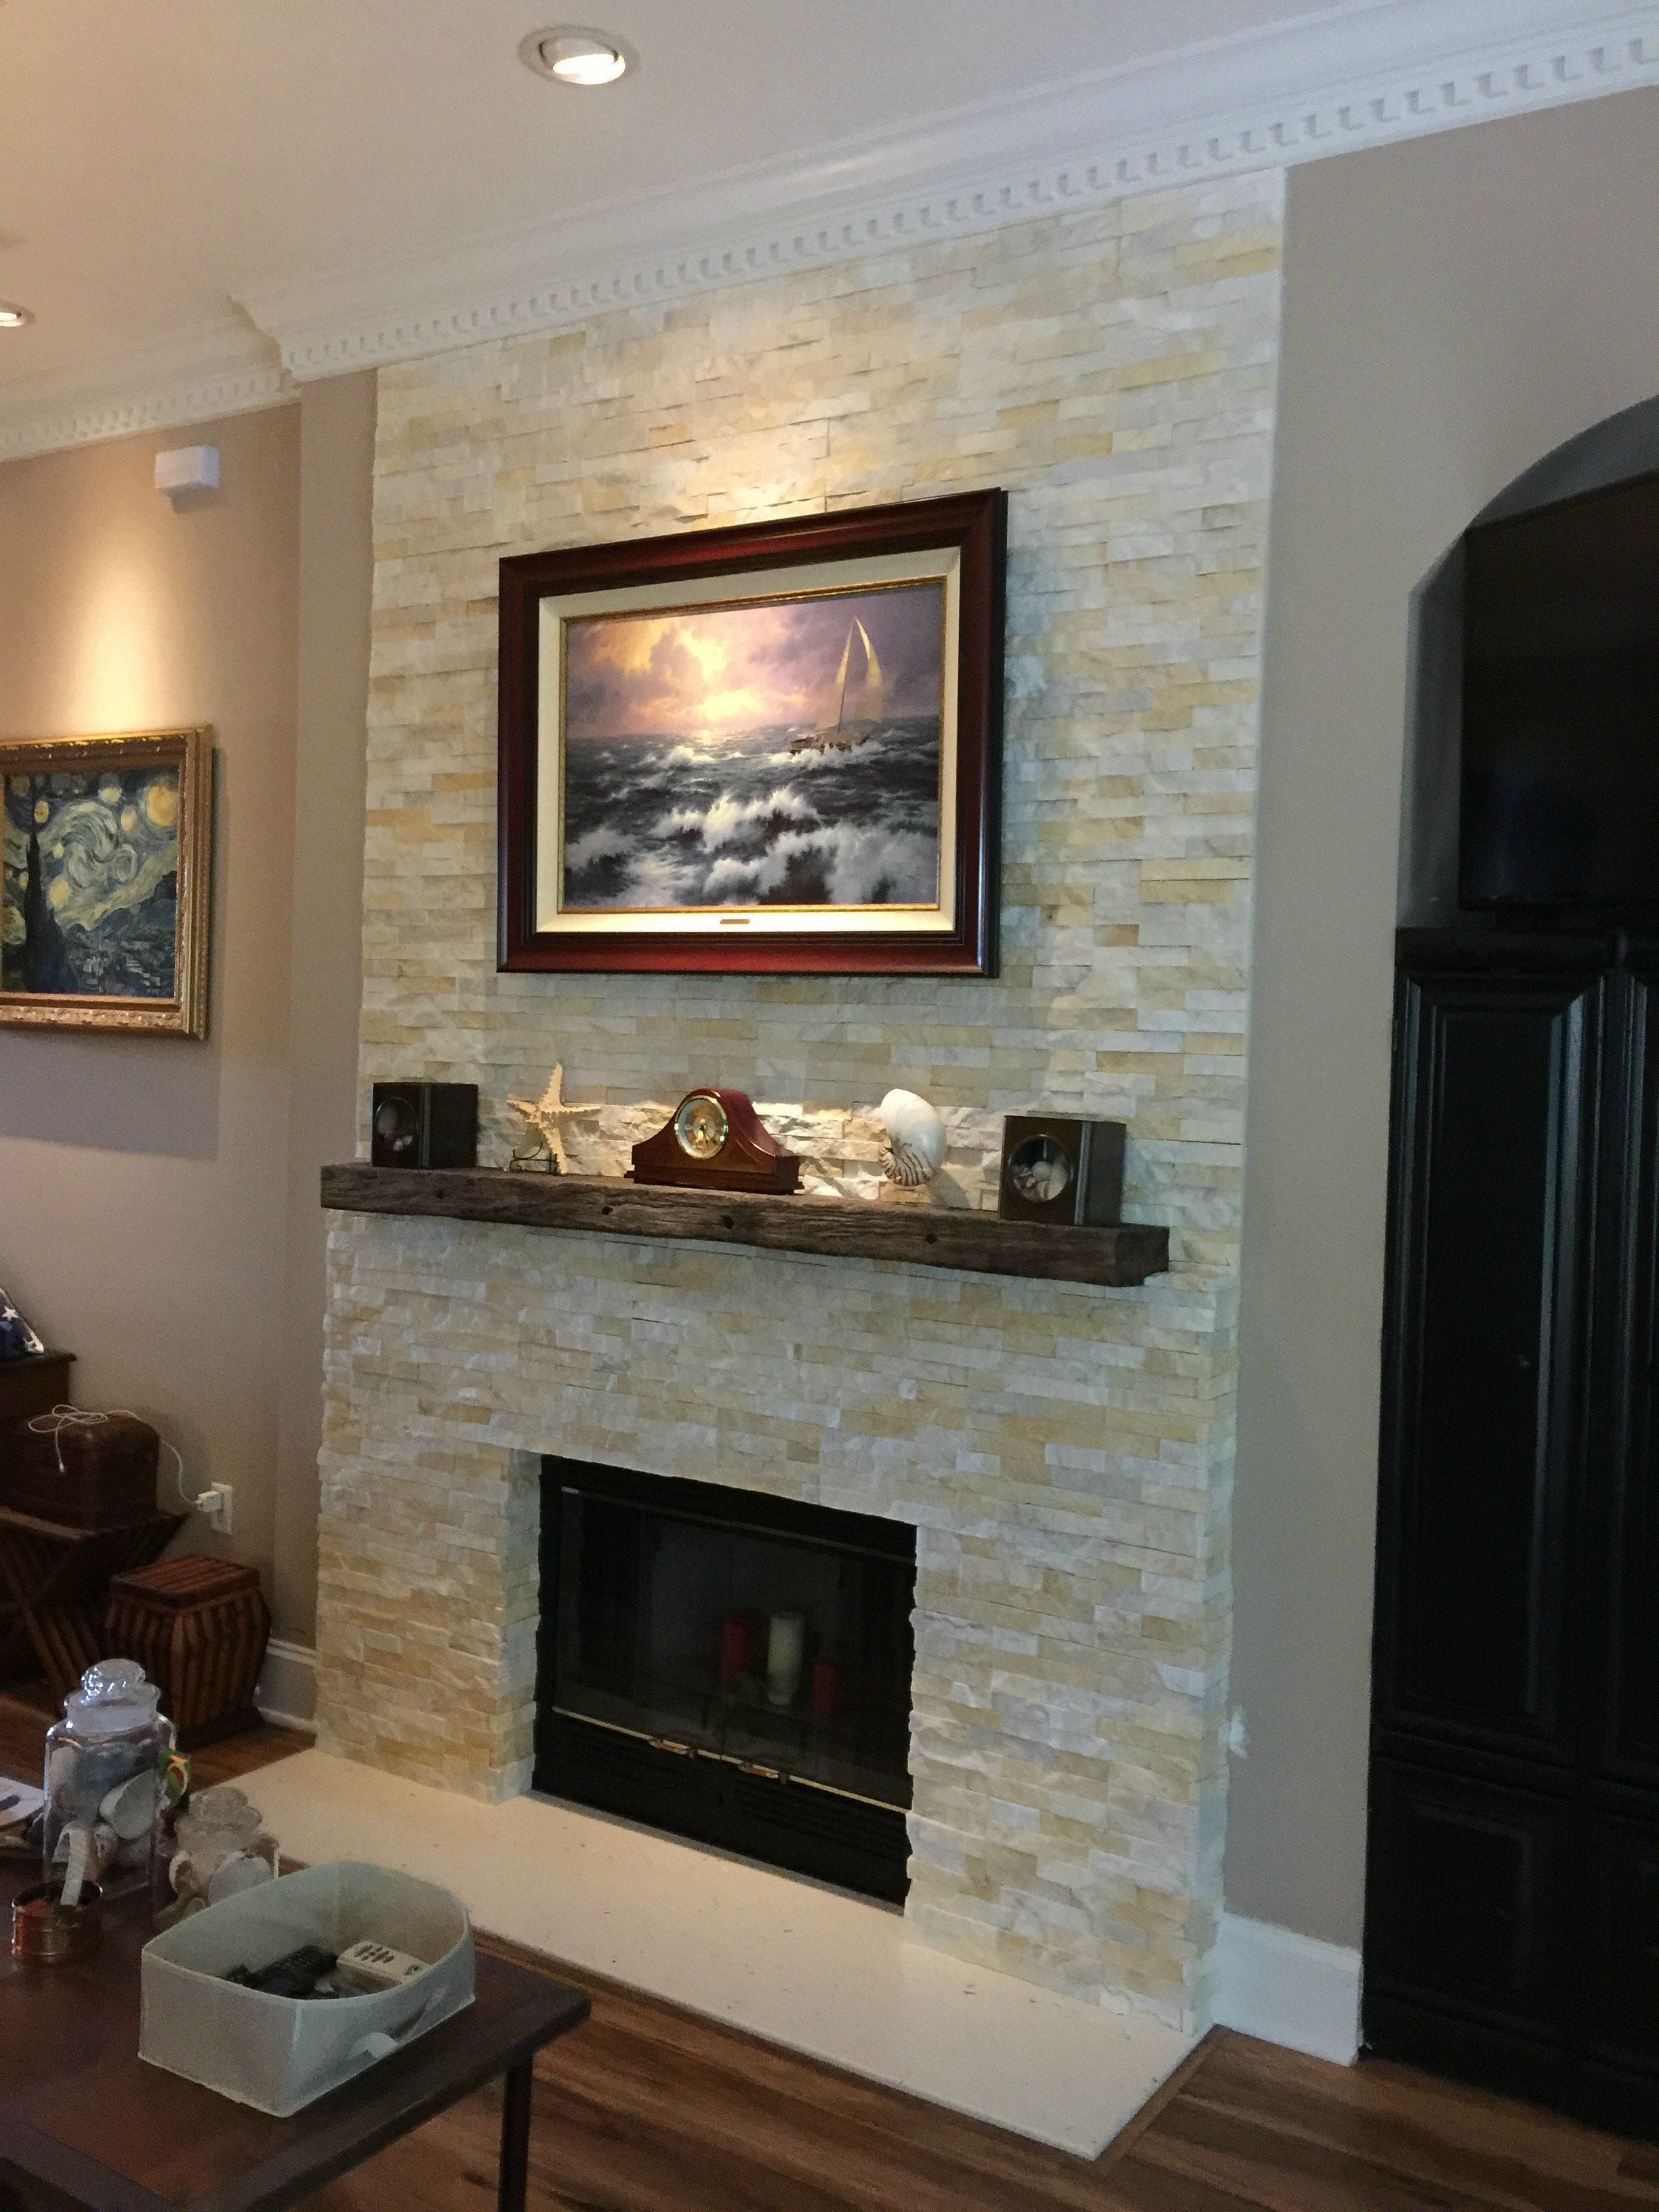 Norstone Natural End Stone Veneer Panels in Ivory color used on a residential fireplace remodel project